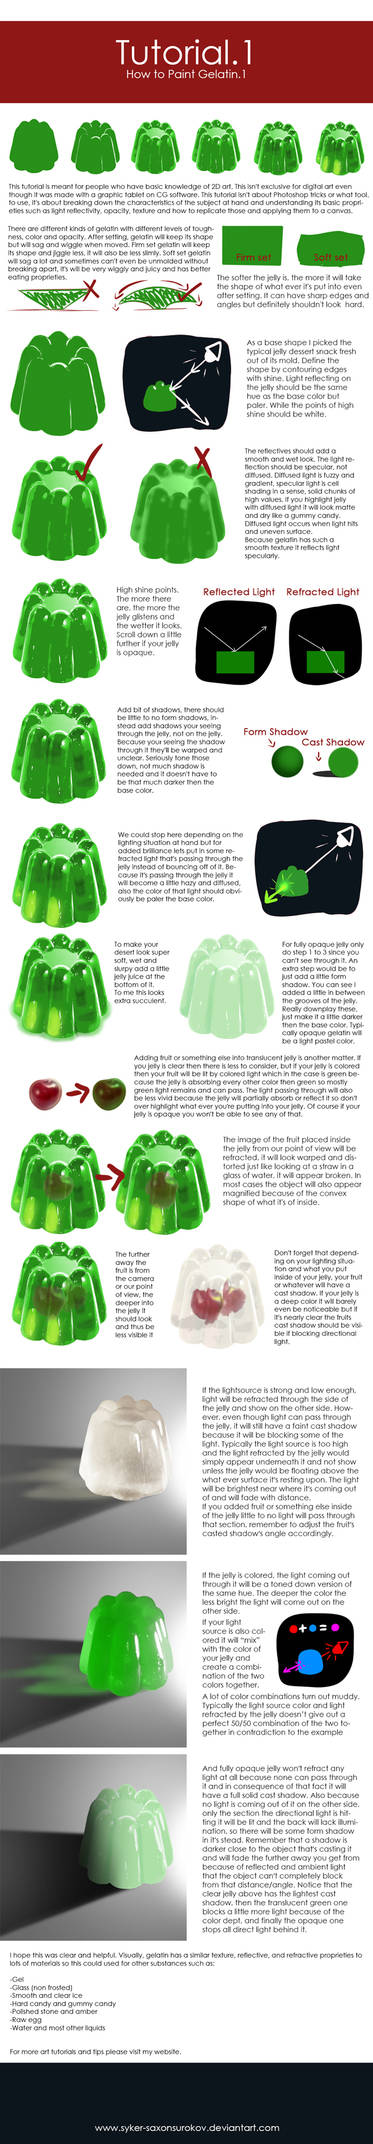 Tutorial.1 [How to Paint Gelatin.1]